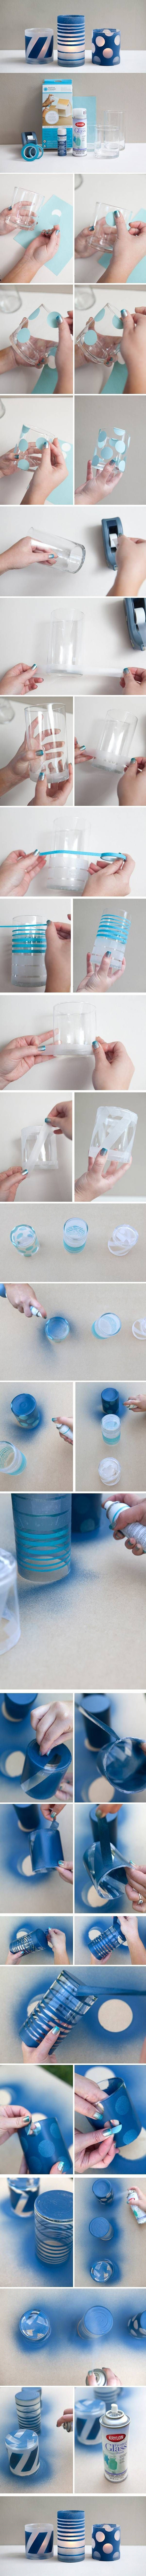 Glass Spray Paint + Clear Candle Holders + Designs = Beautiful Decor ... Illustrated Tutorial only - no link/website